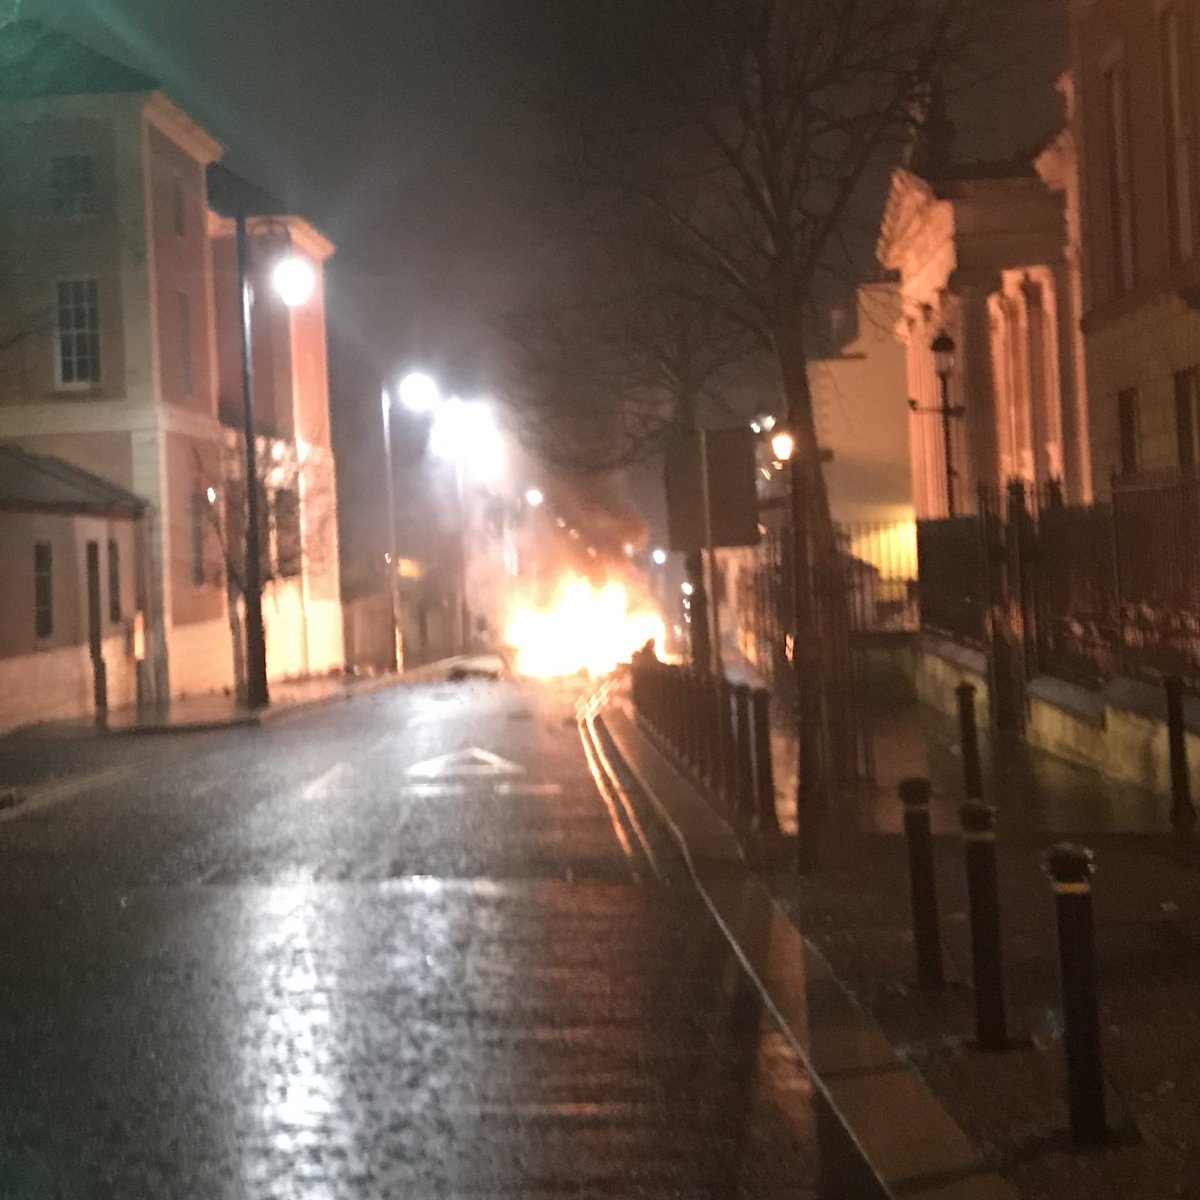 Northern Irish police report suspected vehicle bomb in Londonderry